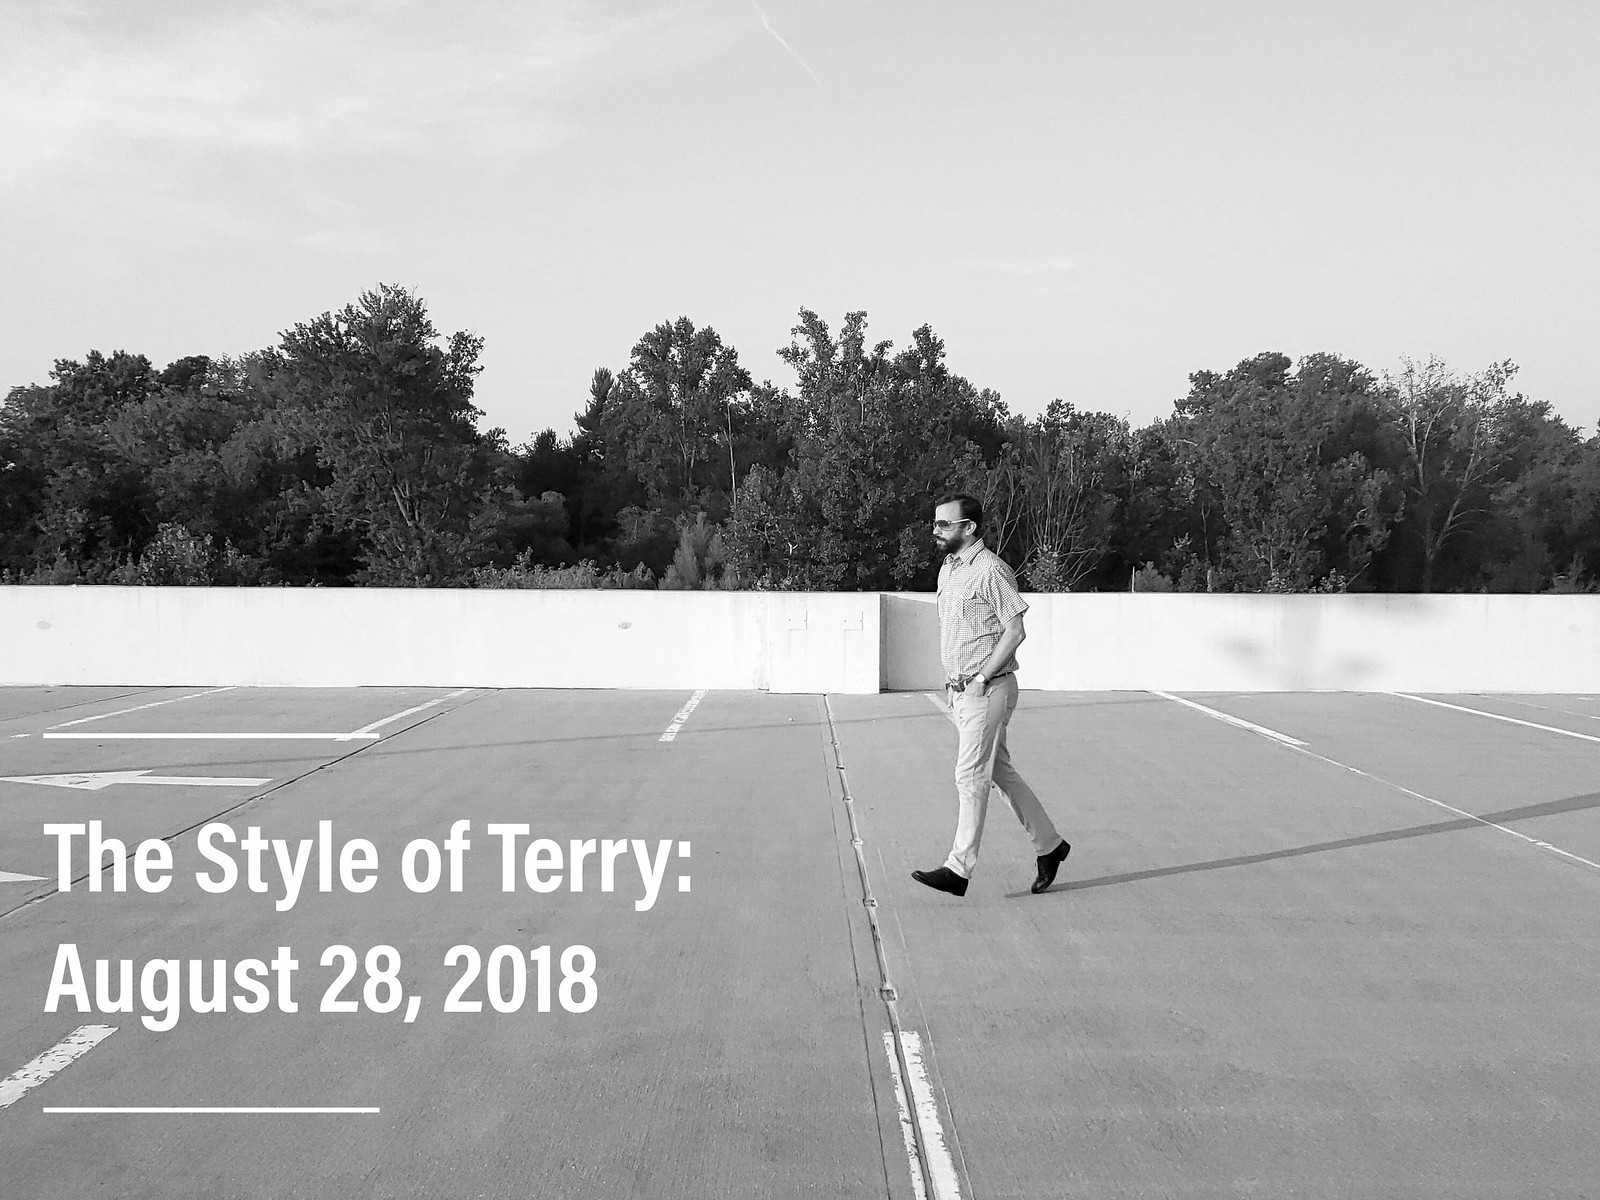 The Style of Terry: 8.28.18